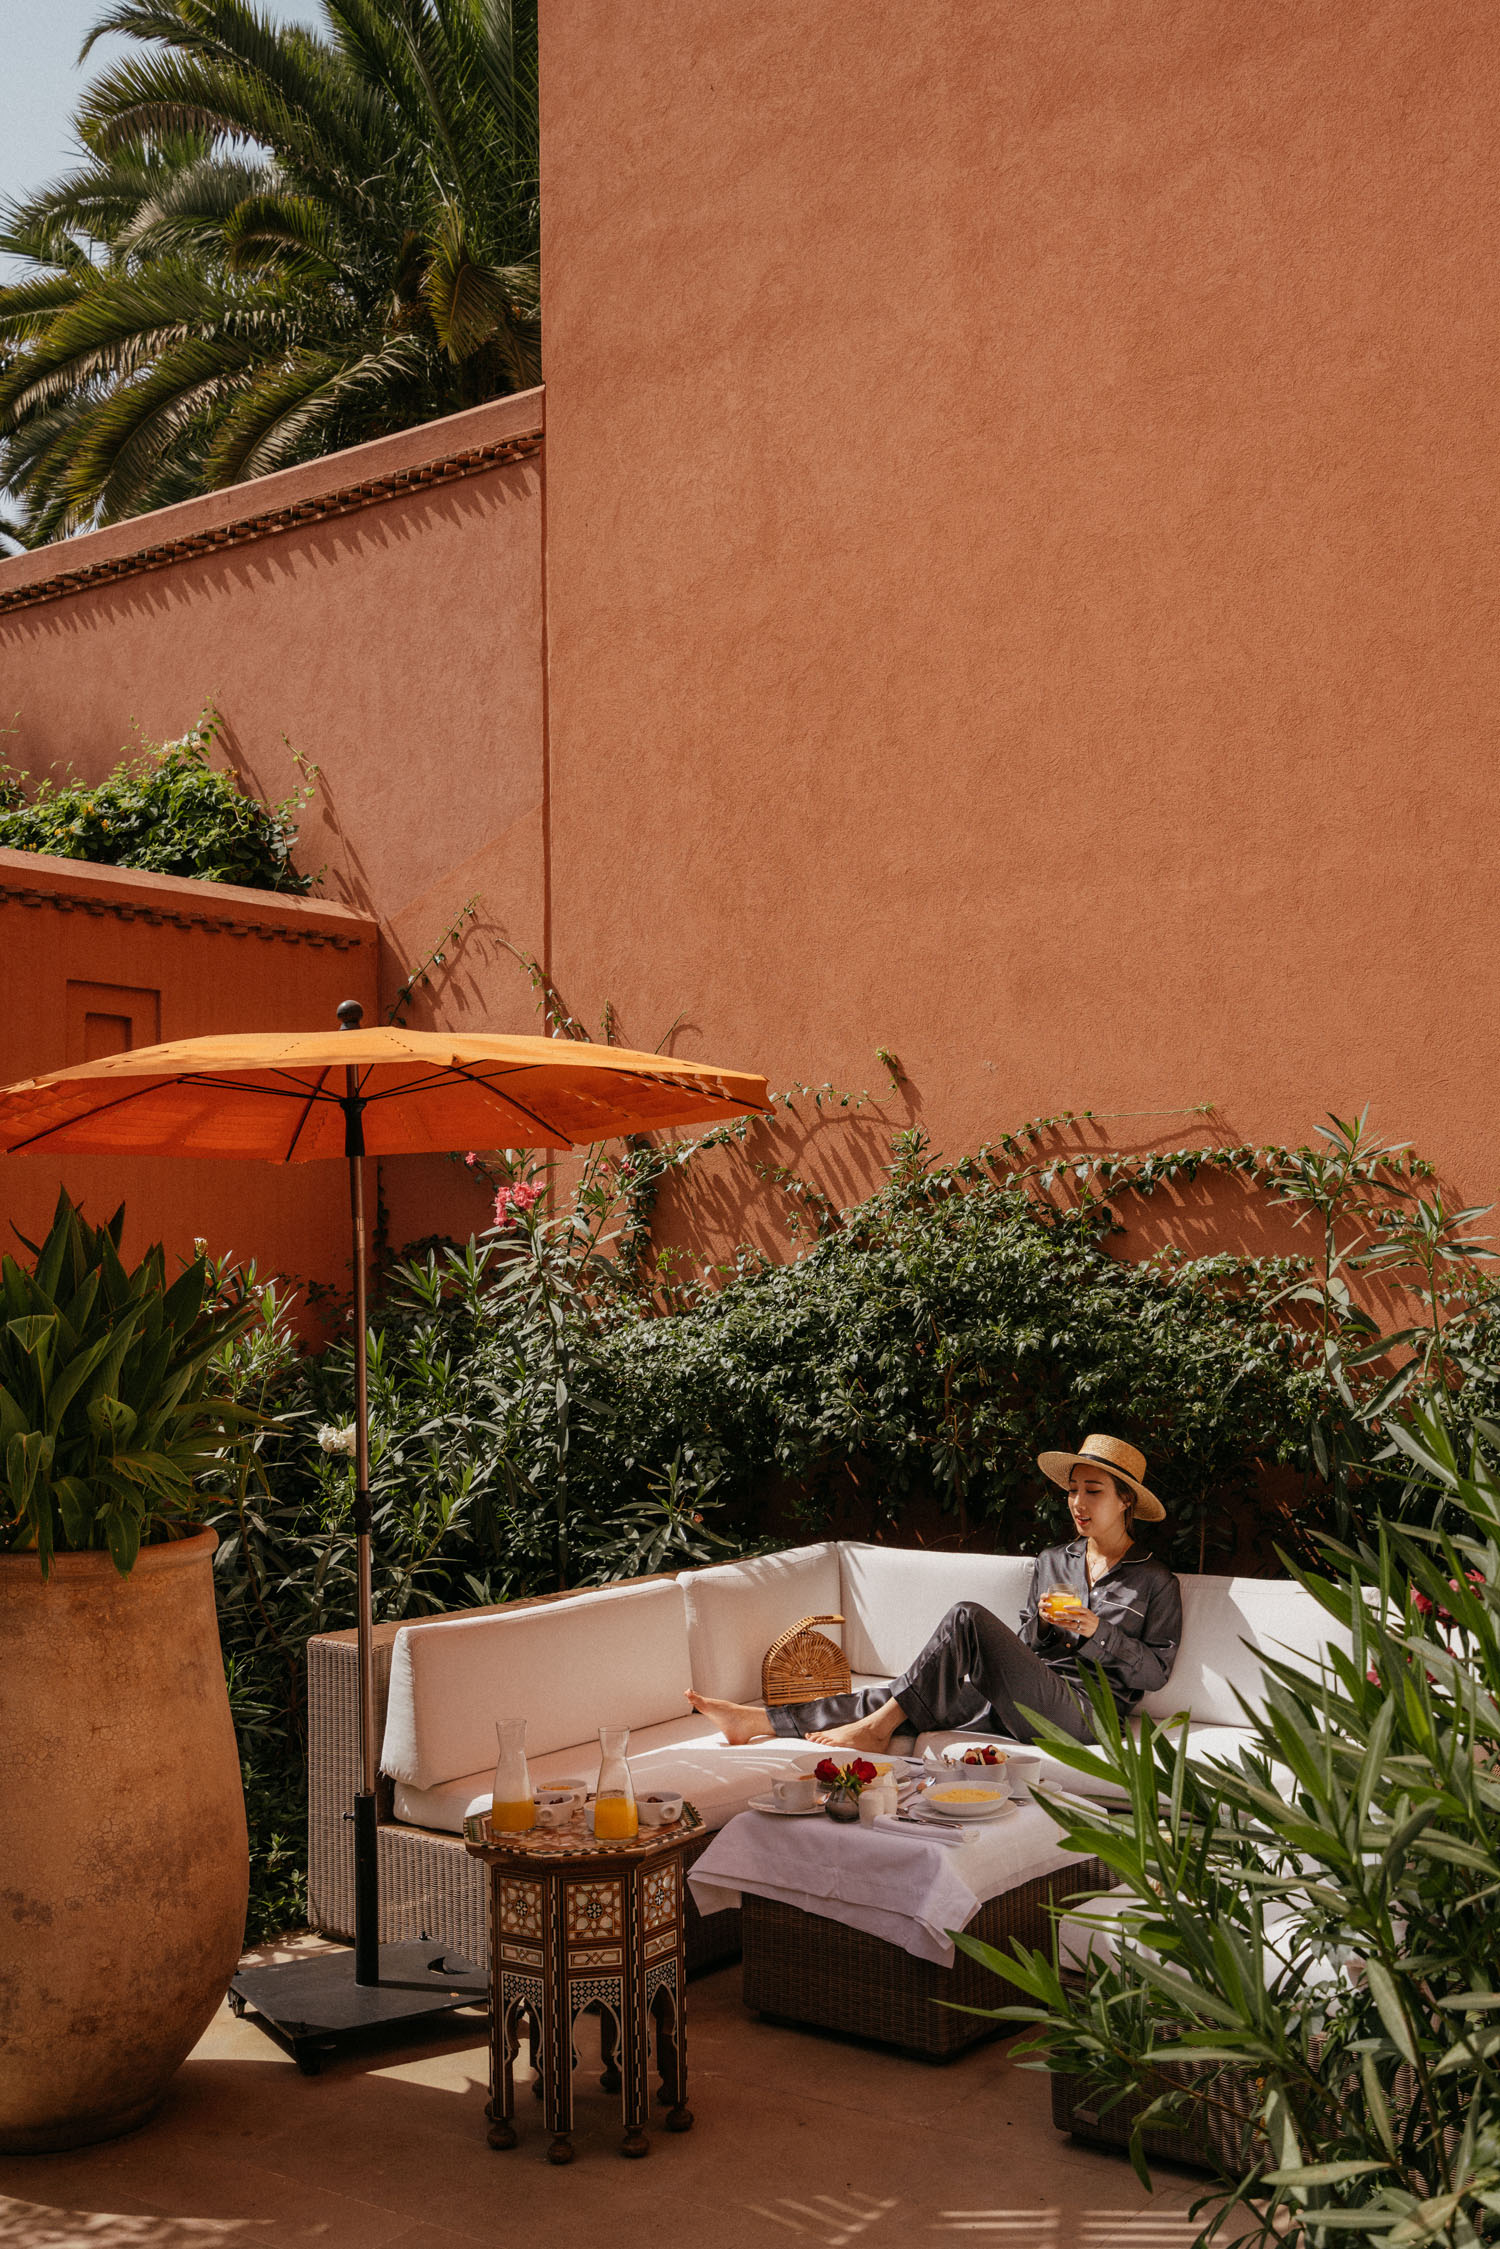 Breakfast in the courtyard of our riad one morning